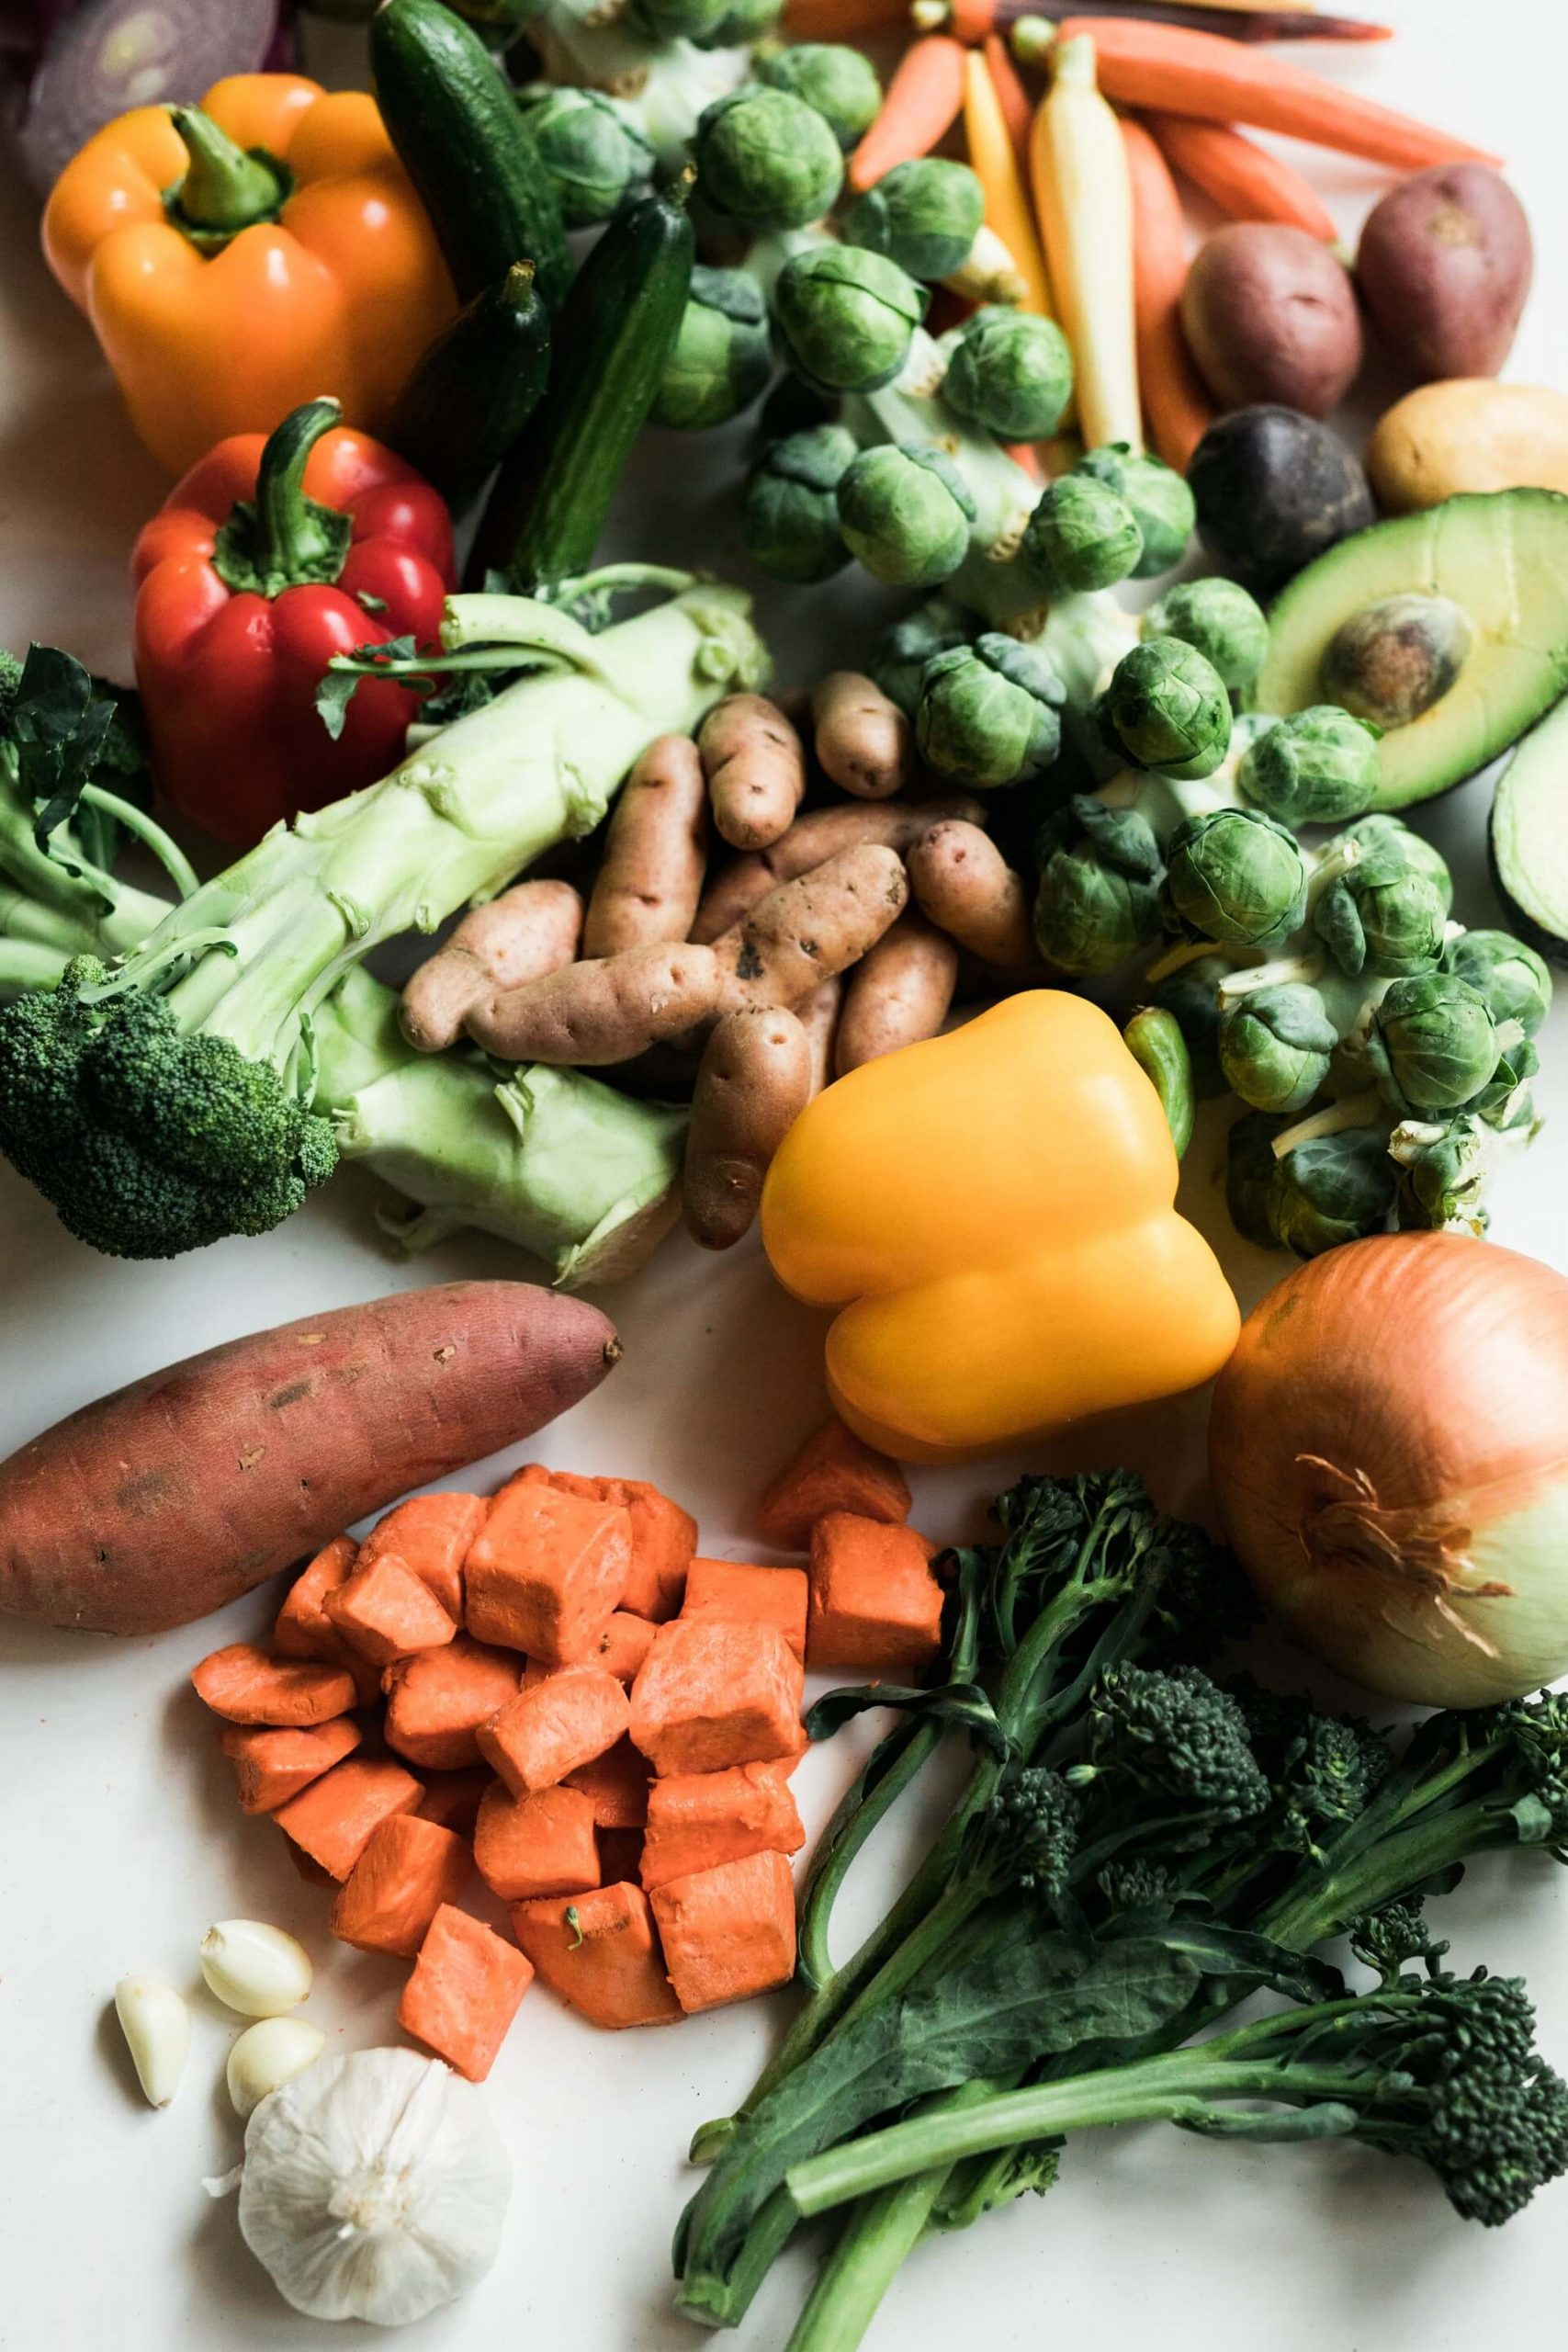 veg_delivery_article_img